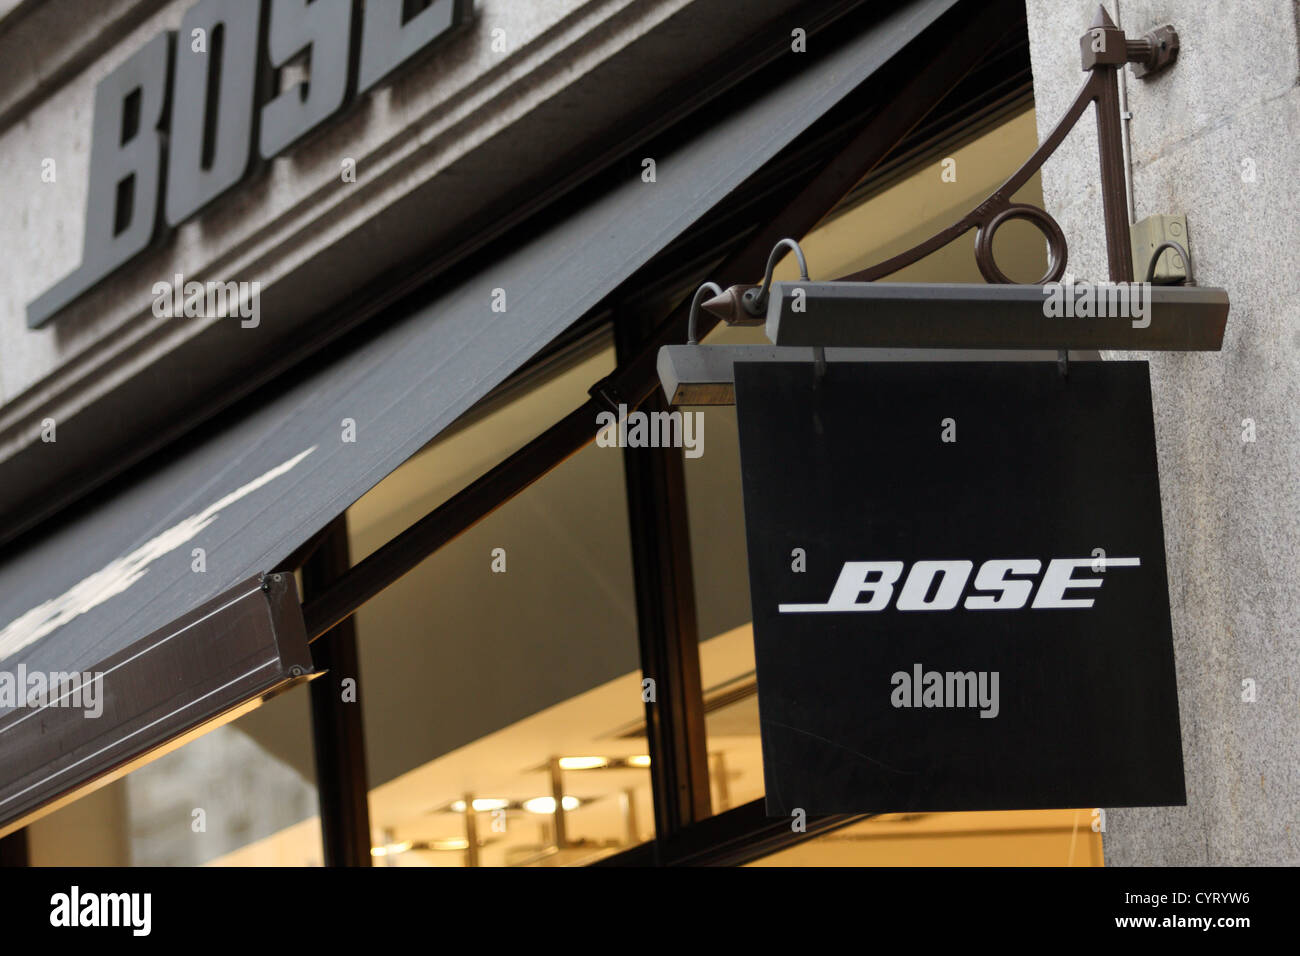 A hanging sign for the Bose store in Regent Street London - Stock Image